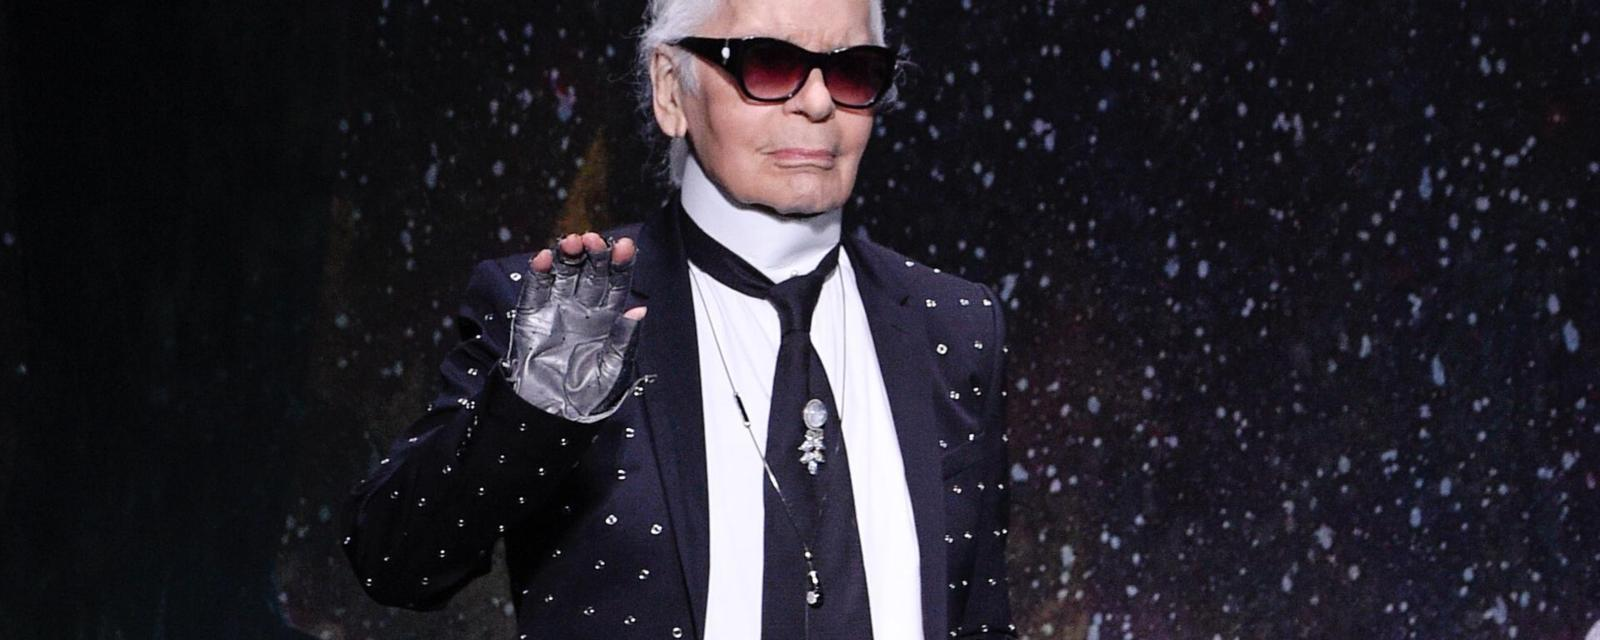 Karl Lagerfeld Iconic Design Moments